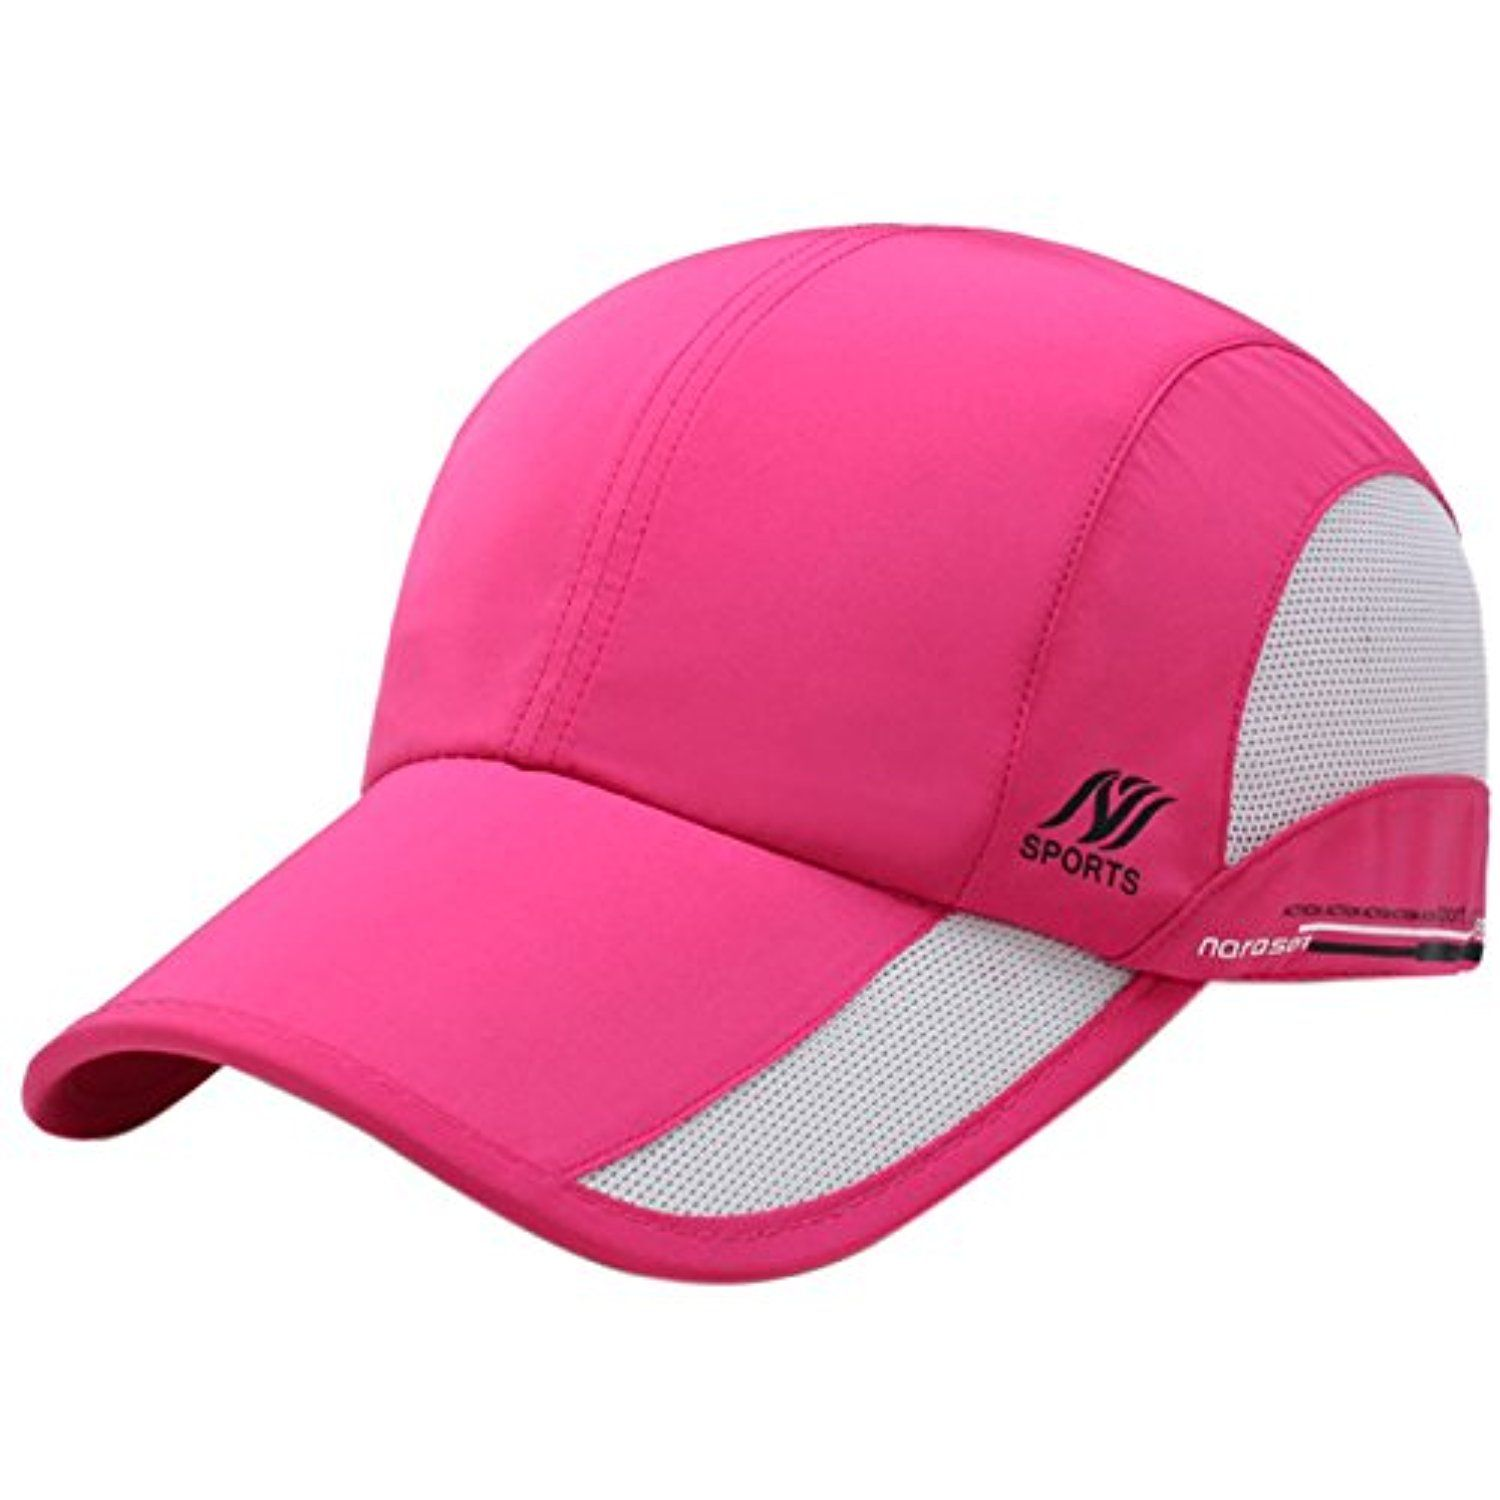 fcd8334115e Panegy Trucker Hat Quick Dry Breathable Mesh Warerproof Cap Long Brim  Adjustable Snapback Baseball Cap     To view further for this item